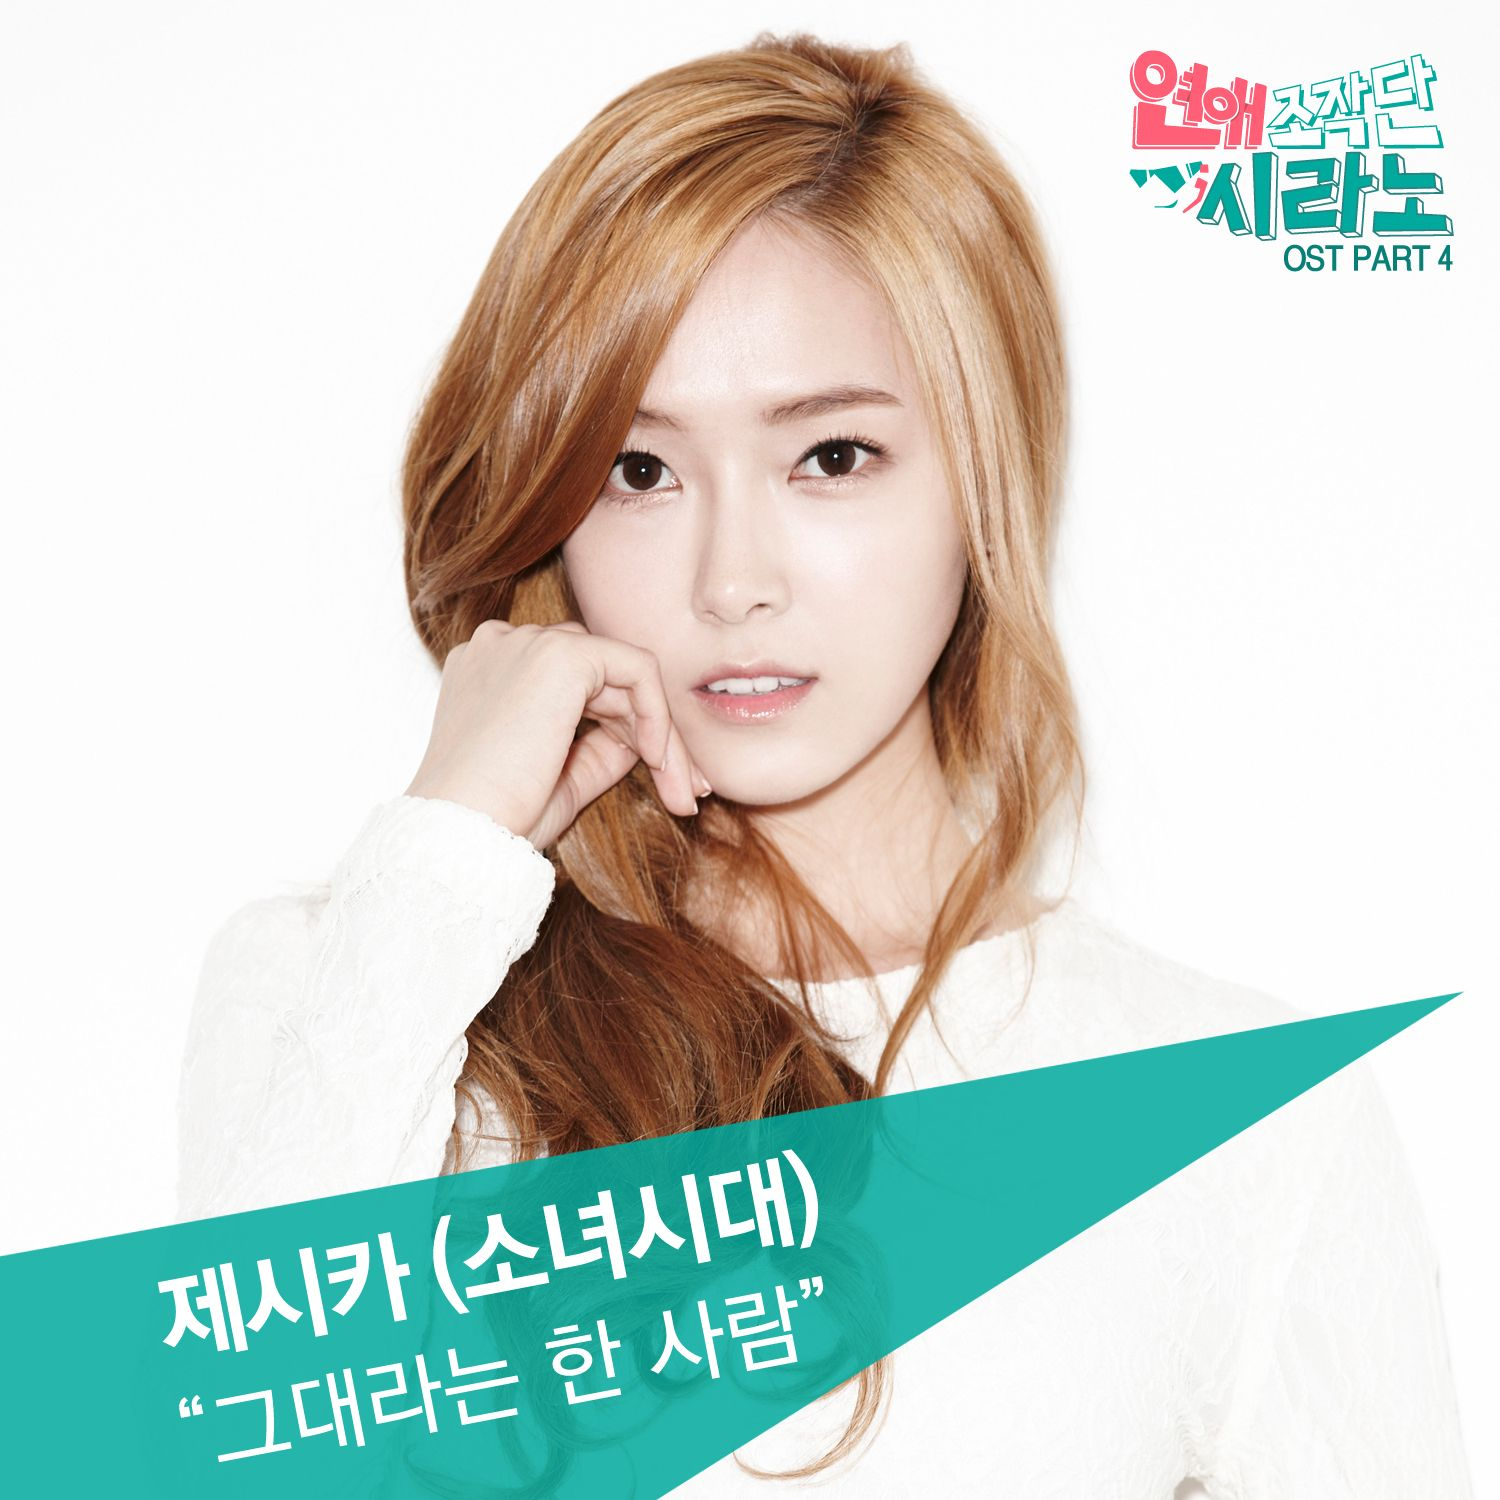 [Single] Jessica (SNSD) - Dating Agency; Cyrano OST Part.4